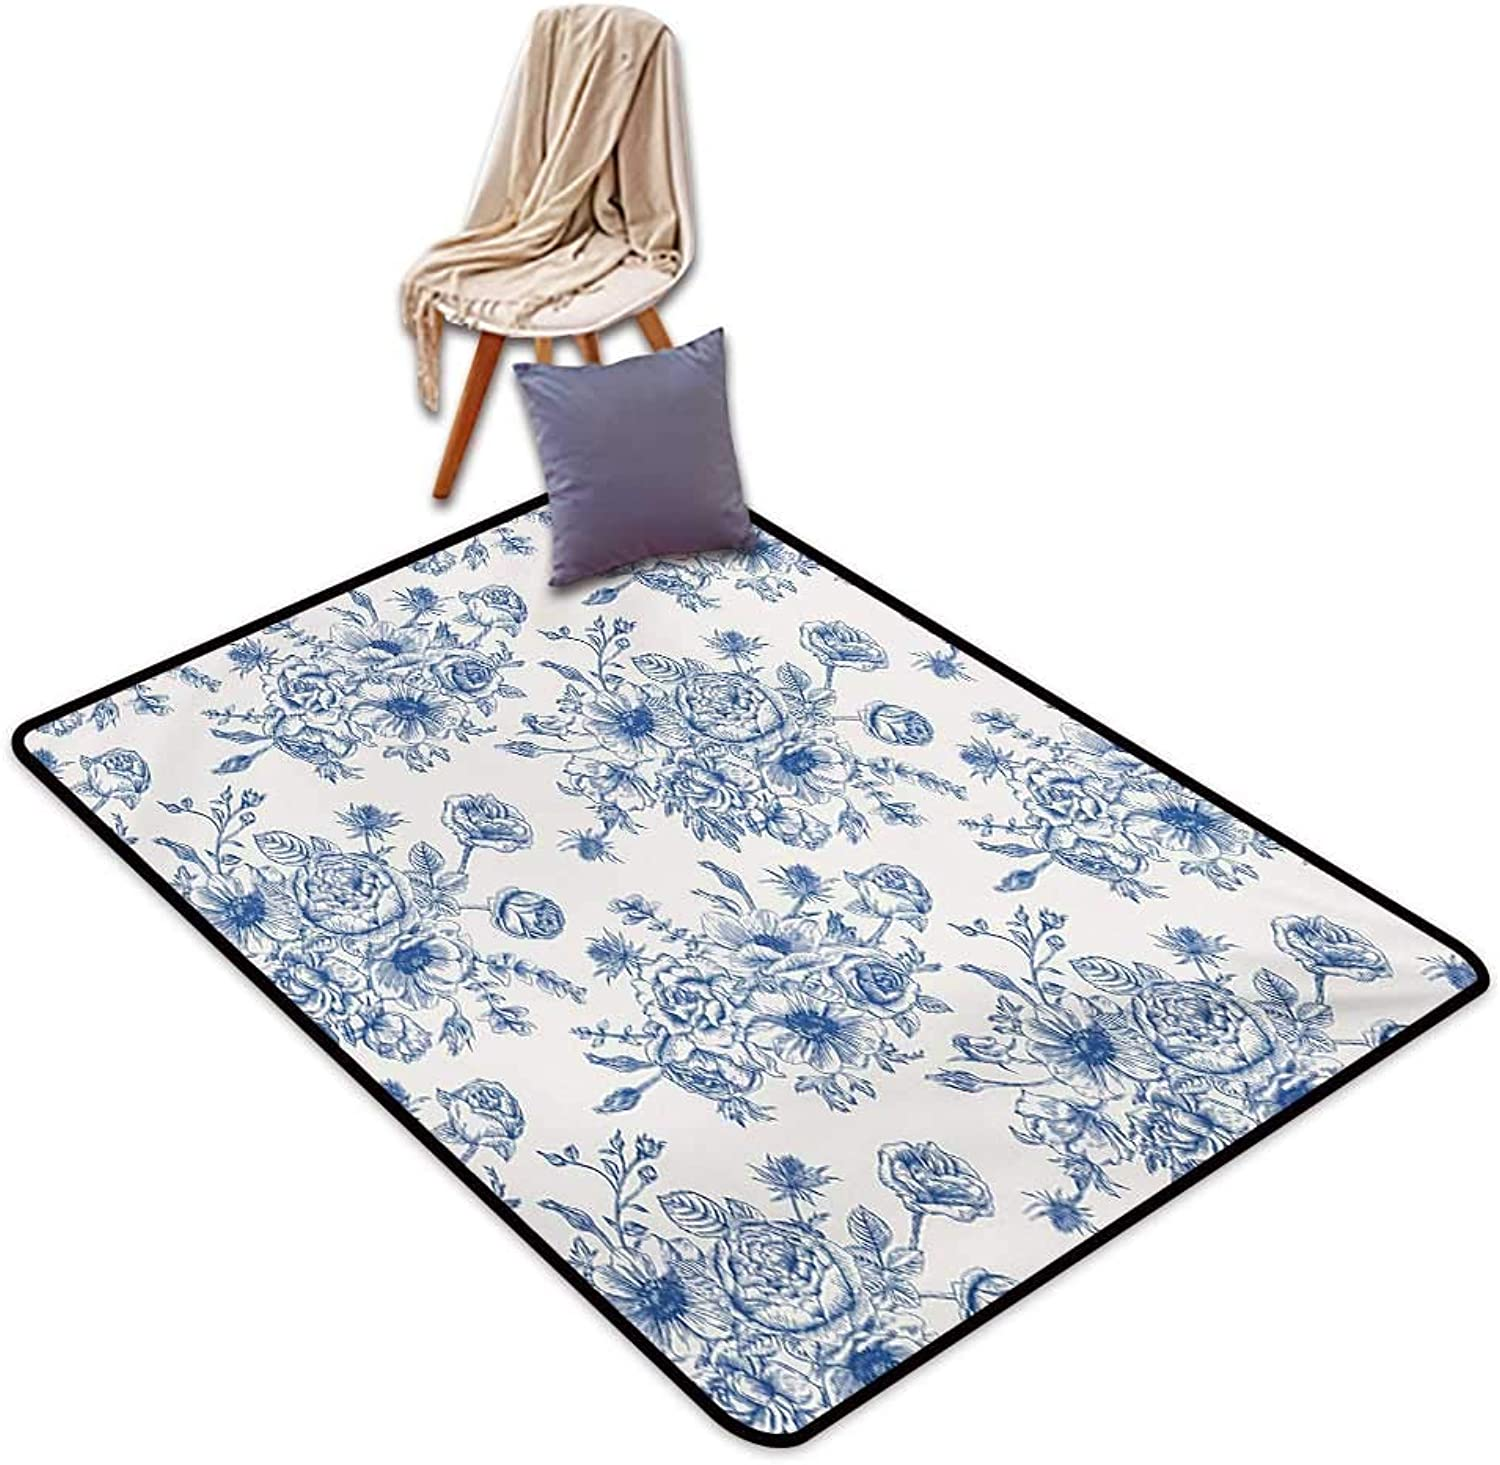 Anemone Flower Indoor Super Absorbs Mud Doormat Floral Pattern with Bouquet of bluee Flowers Delicate Victorian Design Water Absorption, Anti-Skid and Oil Proof 48  Wx59 L Night bluee White